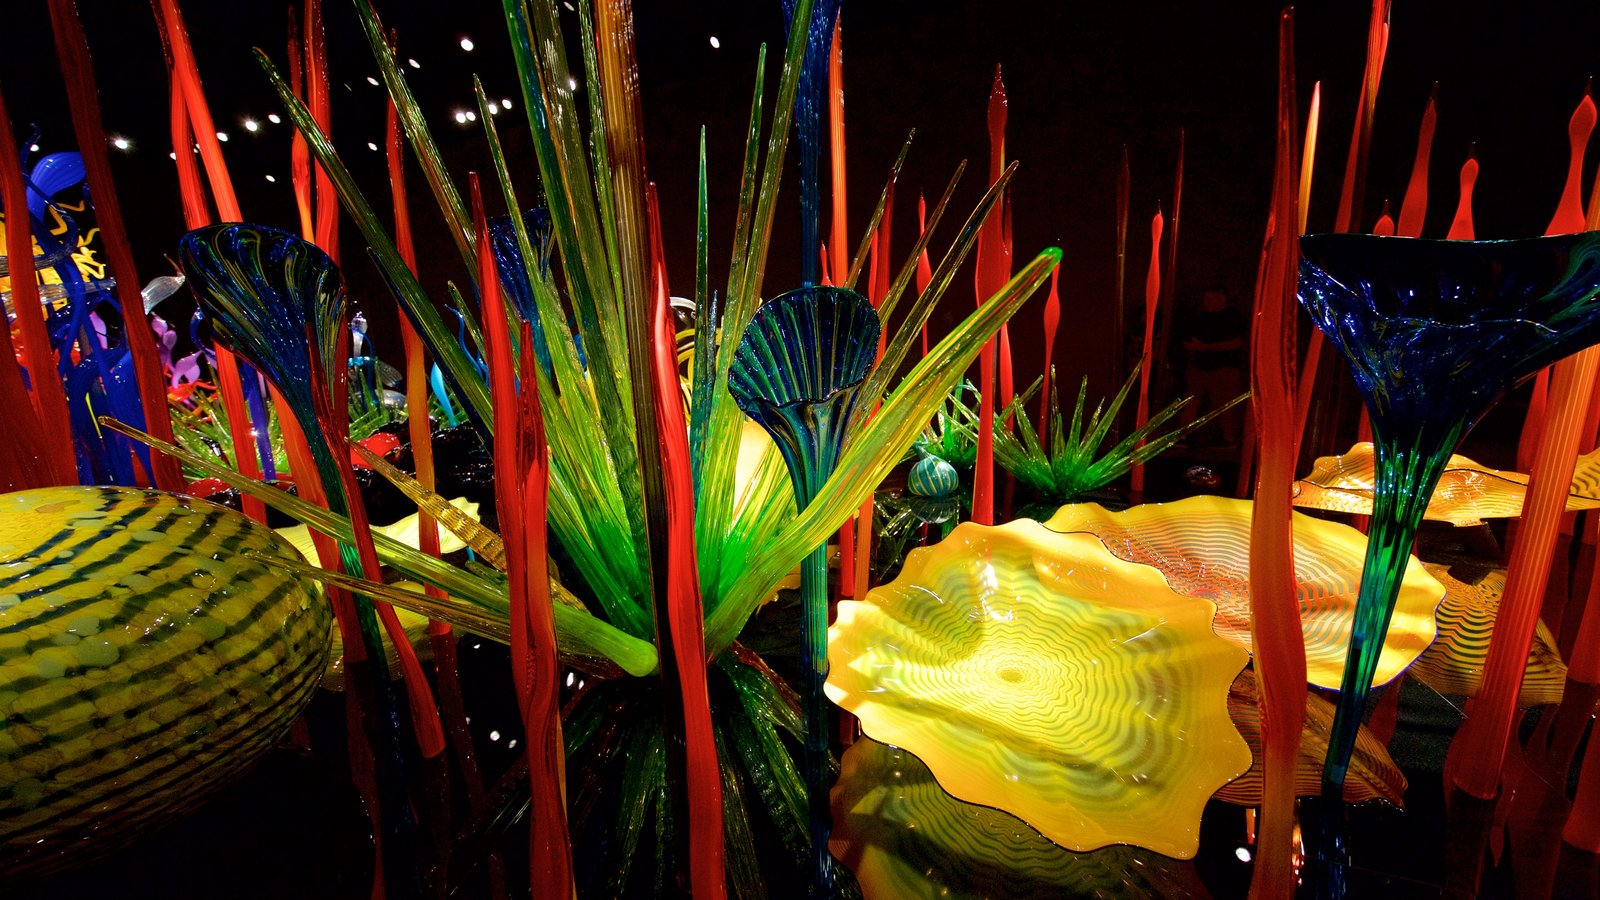 The Chihuly Gardens and Glass Museum is a feast for the eyes.